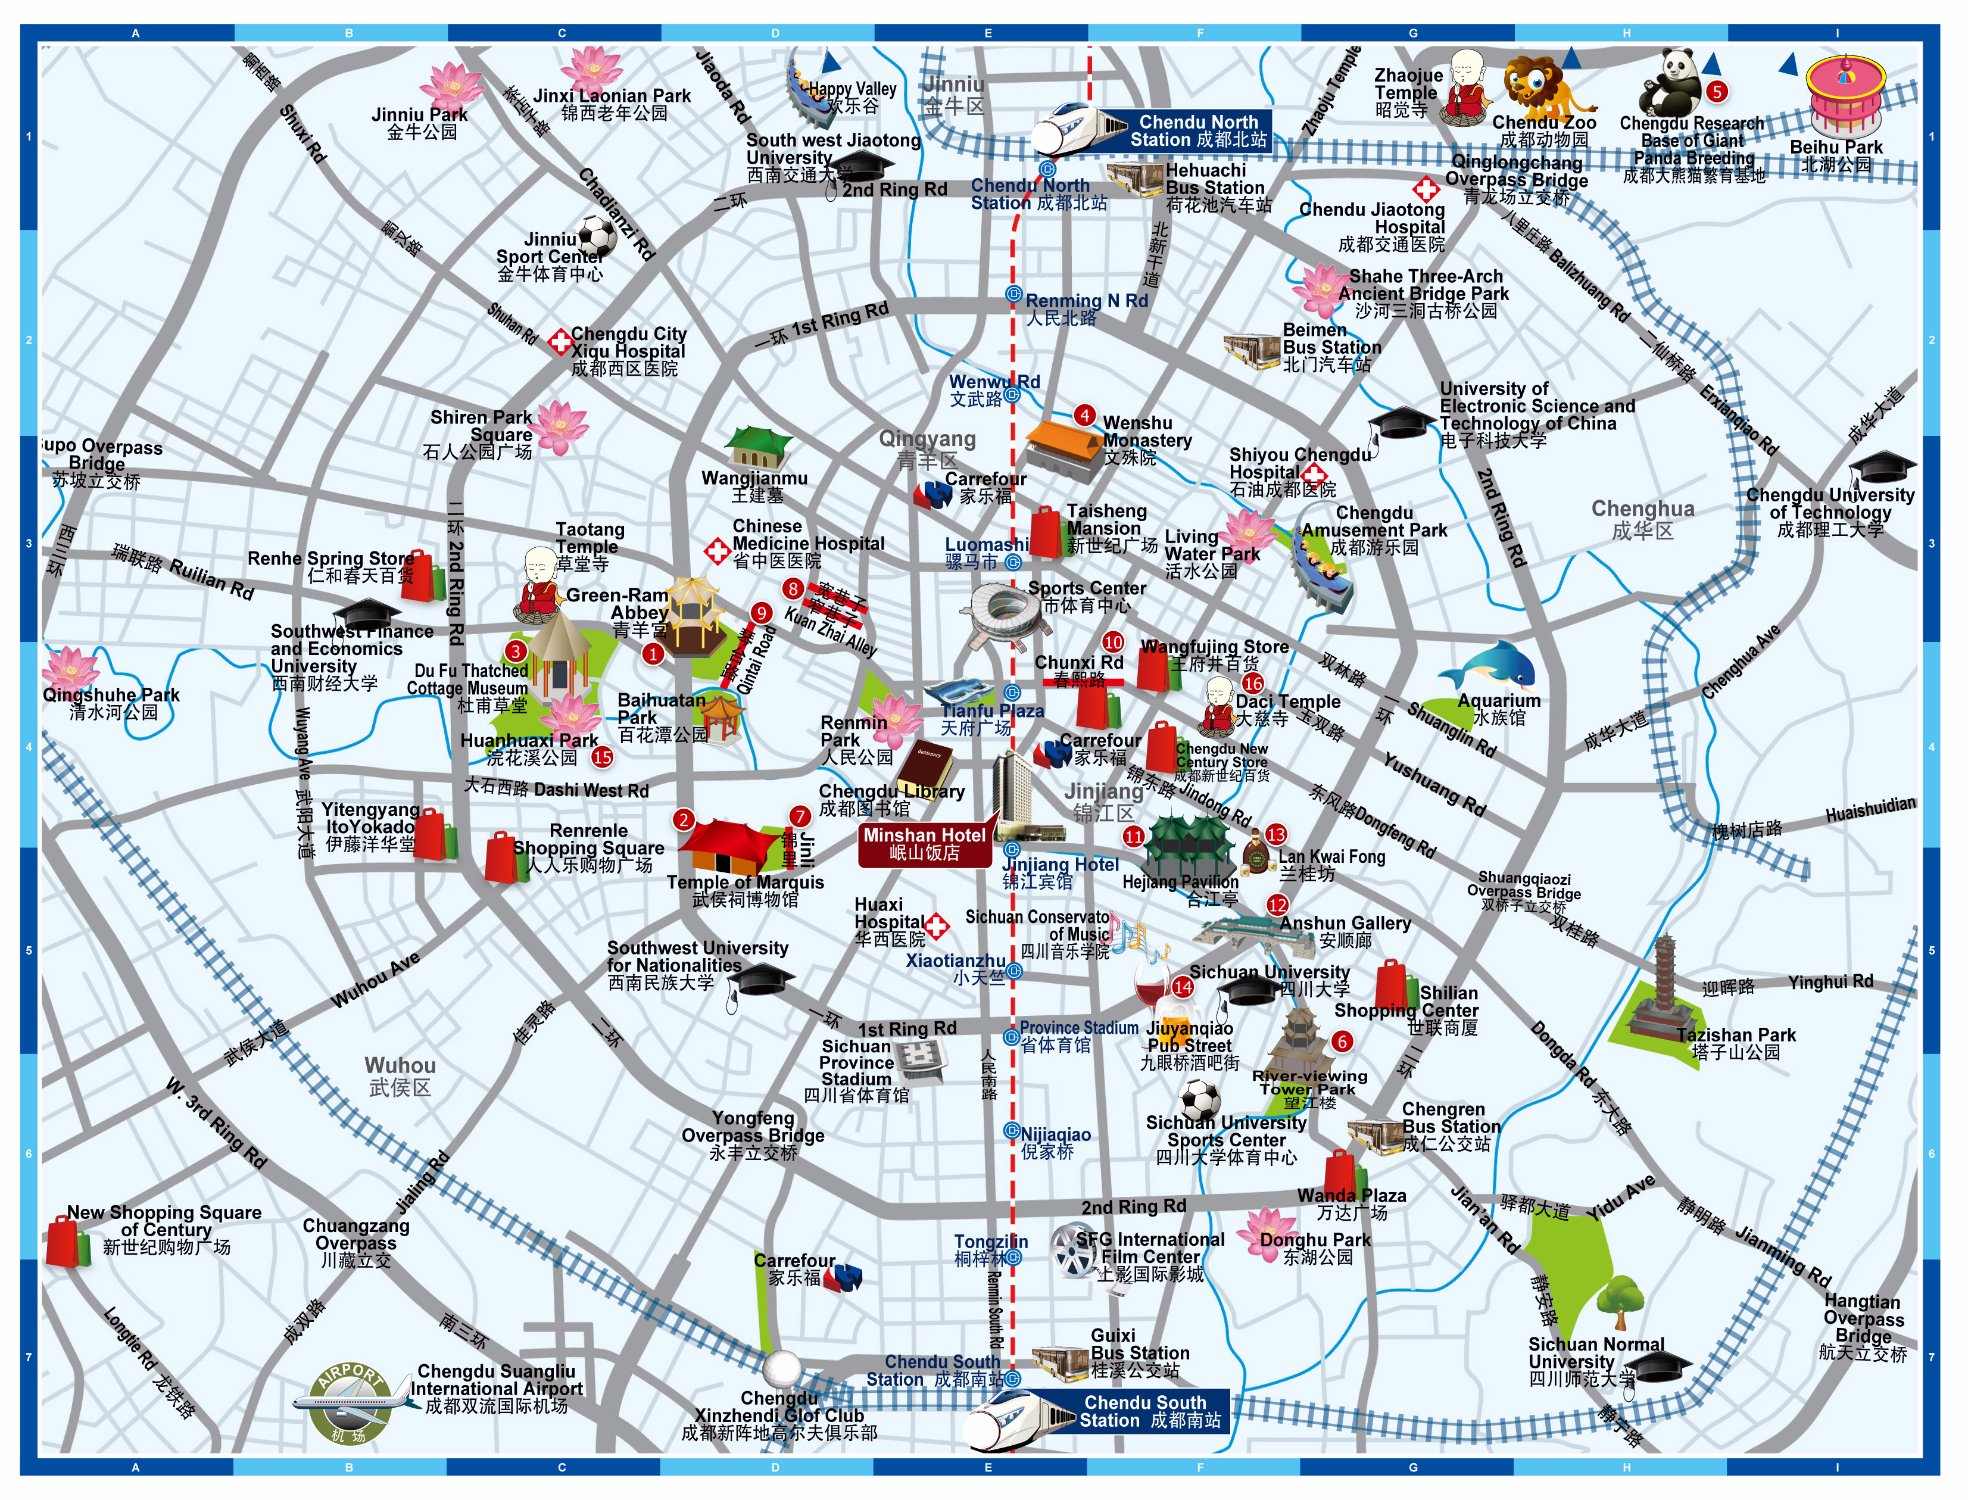 chengdu city tour attractions map